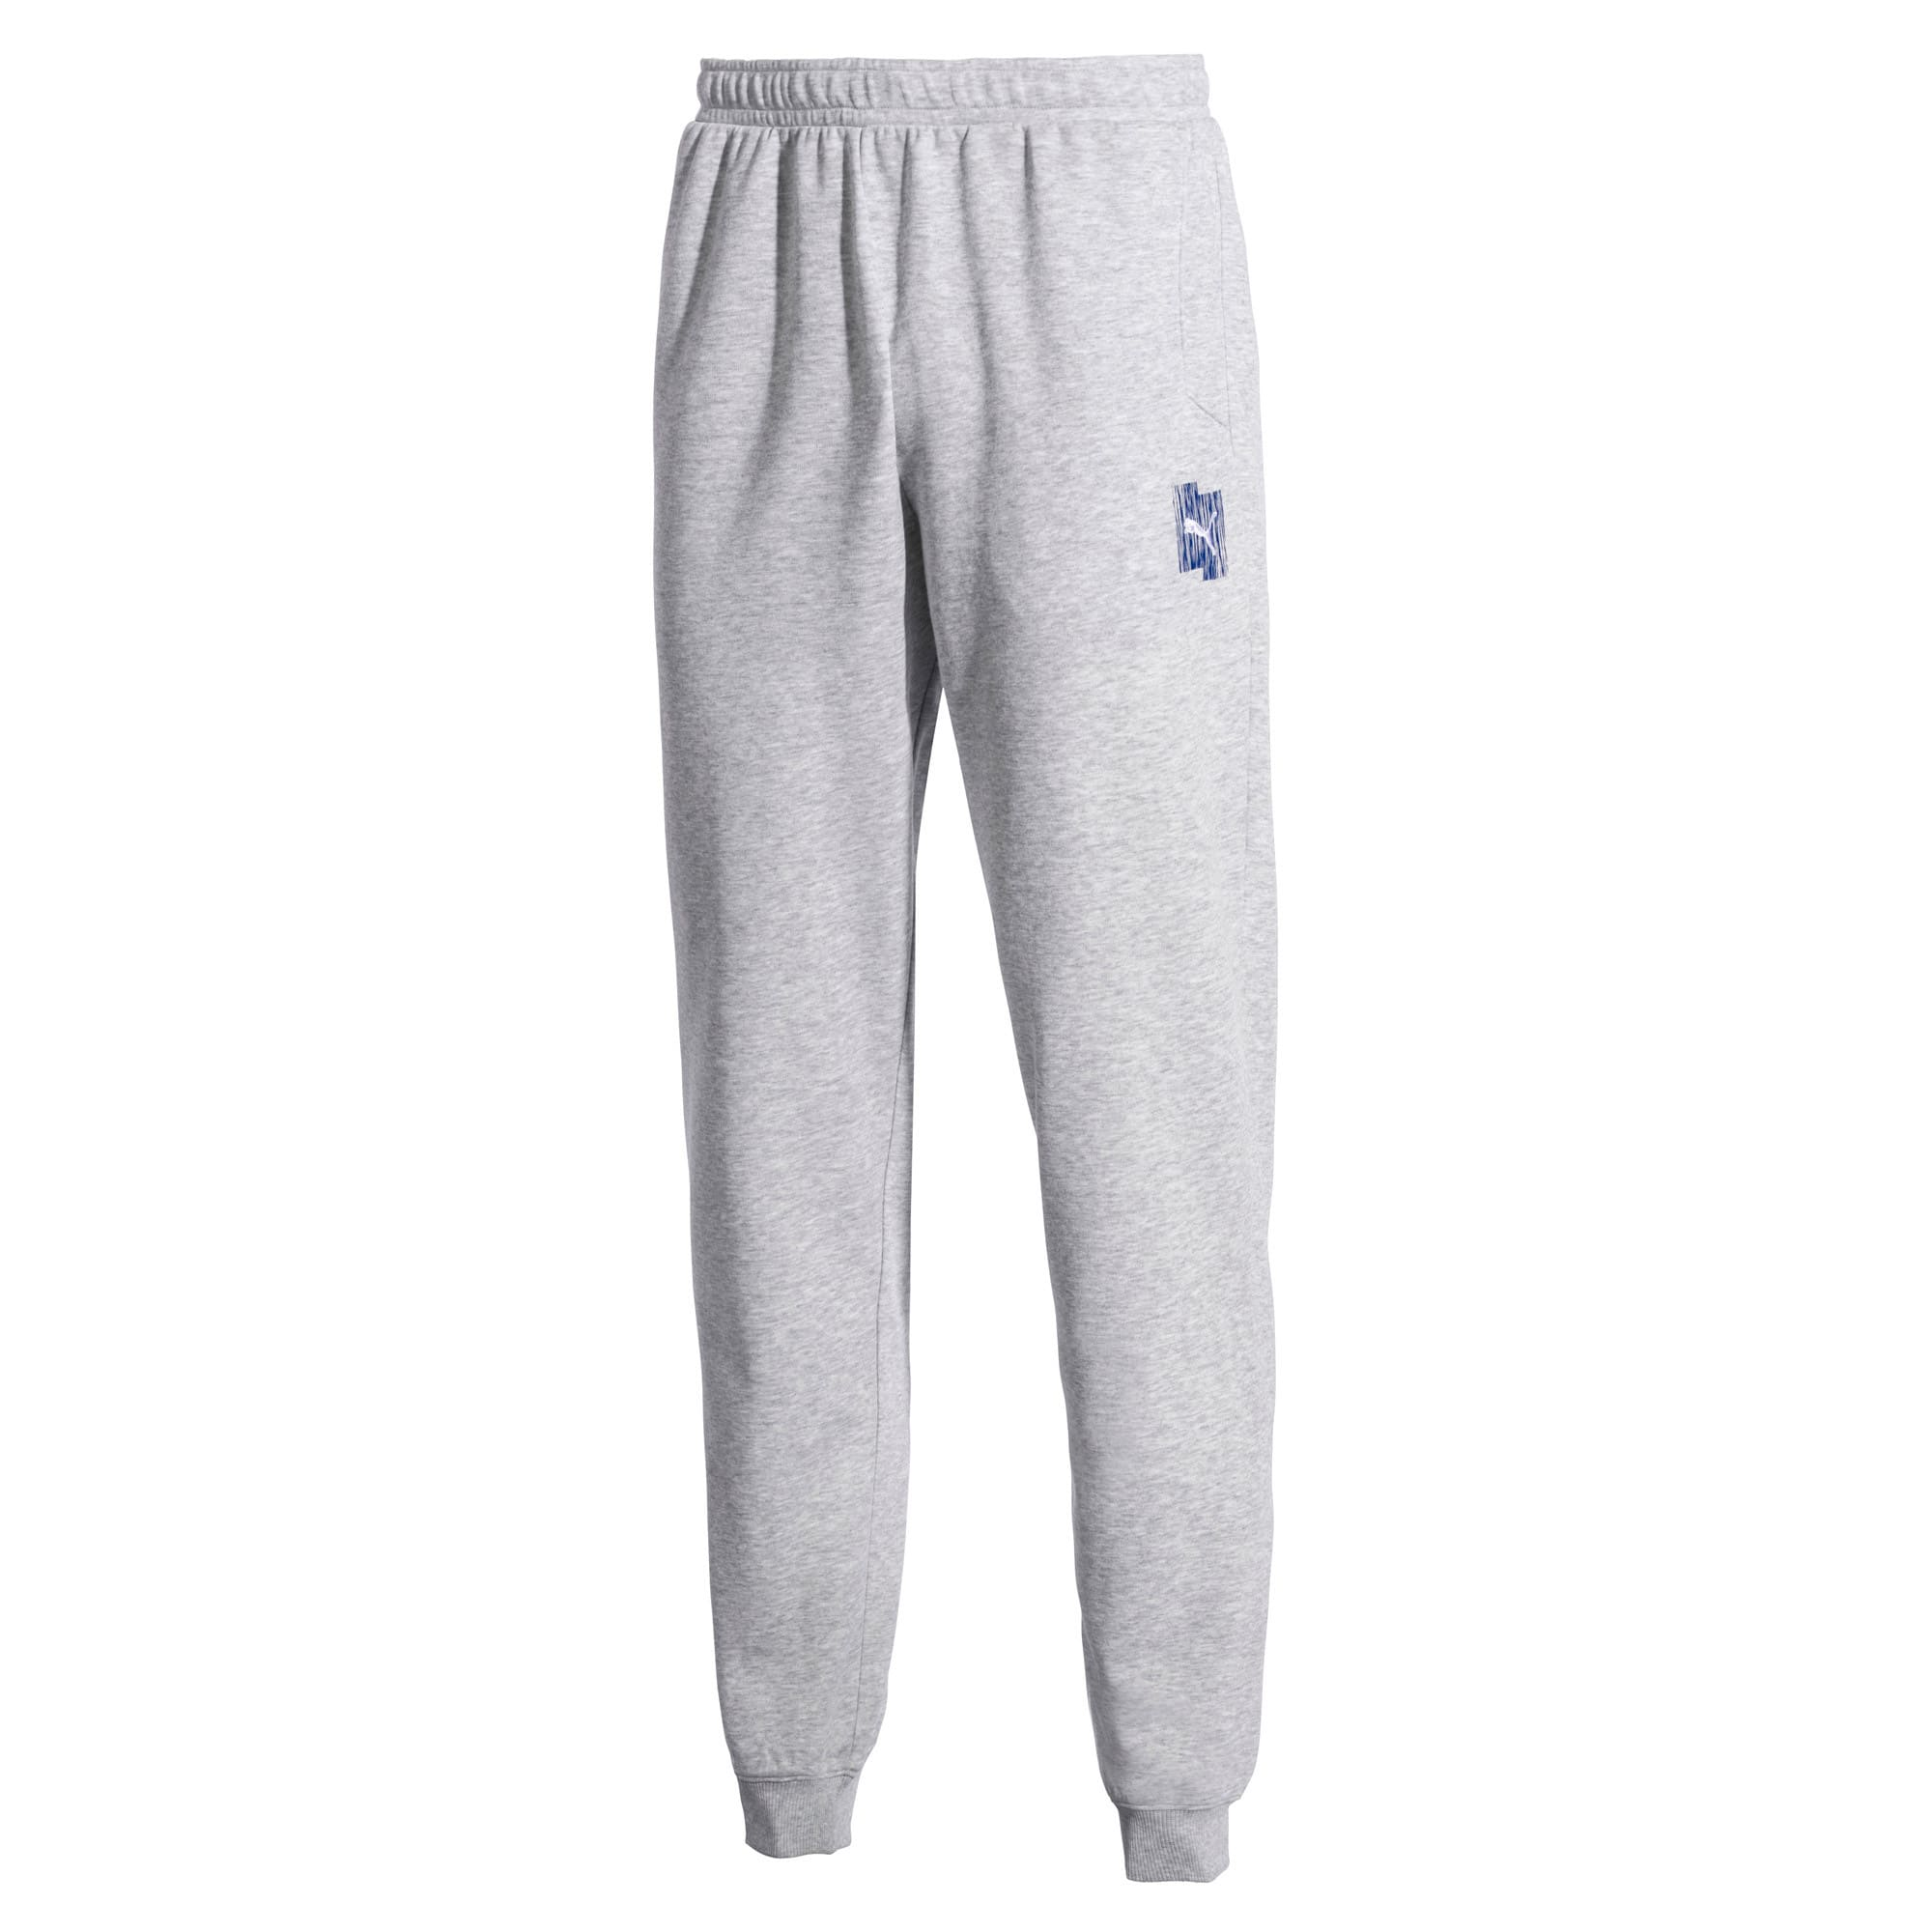 Thumbnail 1 of PUMA x ADER ERROR Strick Sweatpants, Light Gray Heather, medium